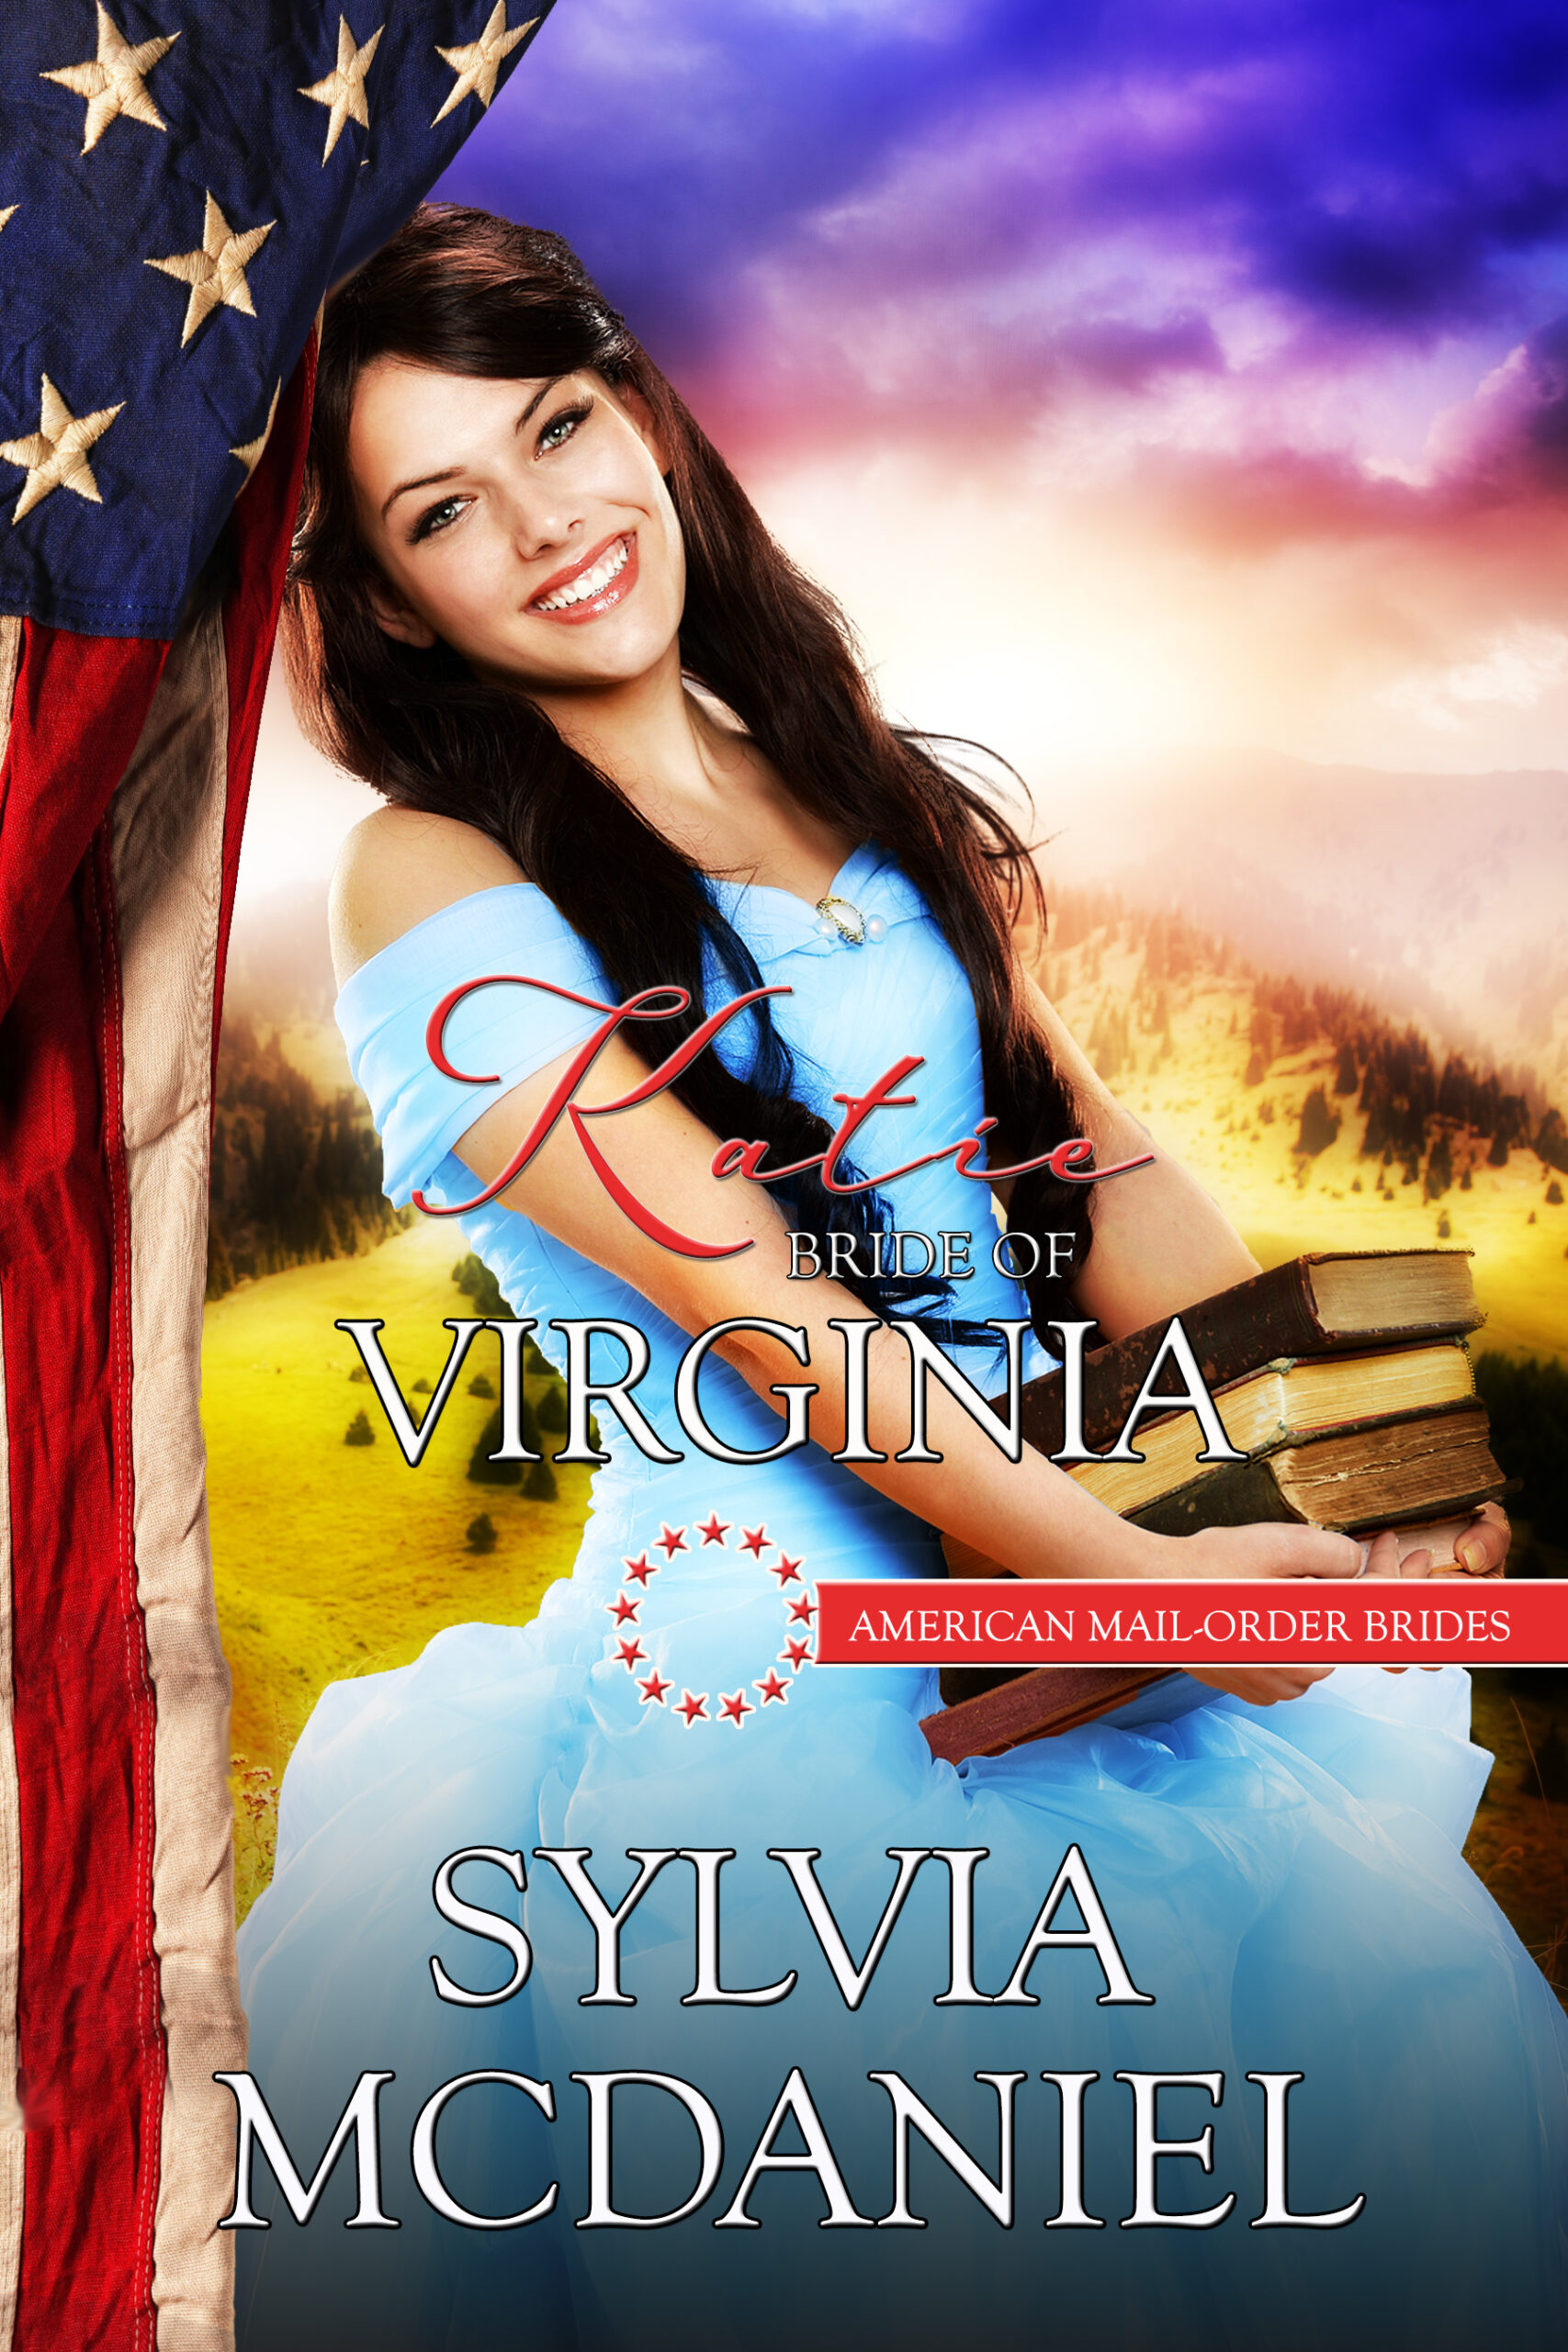 Cover for Katie by Sylvia McDaniel. A girl smiling in a blue dress holding books.